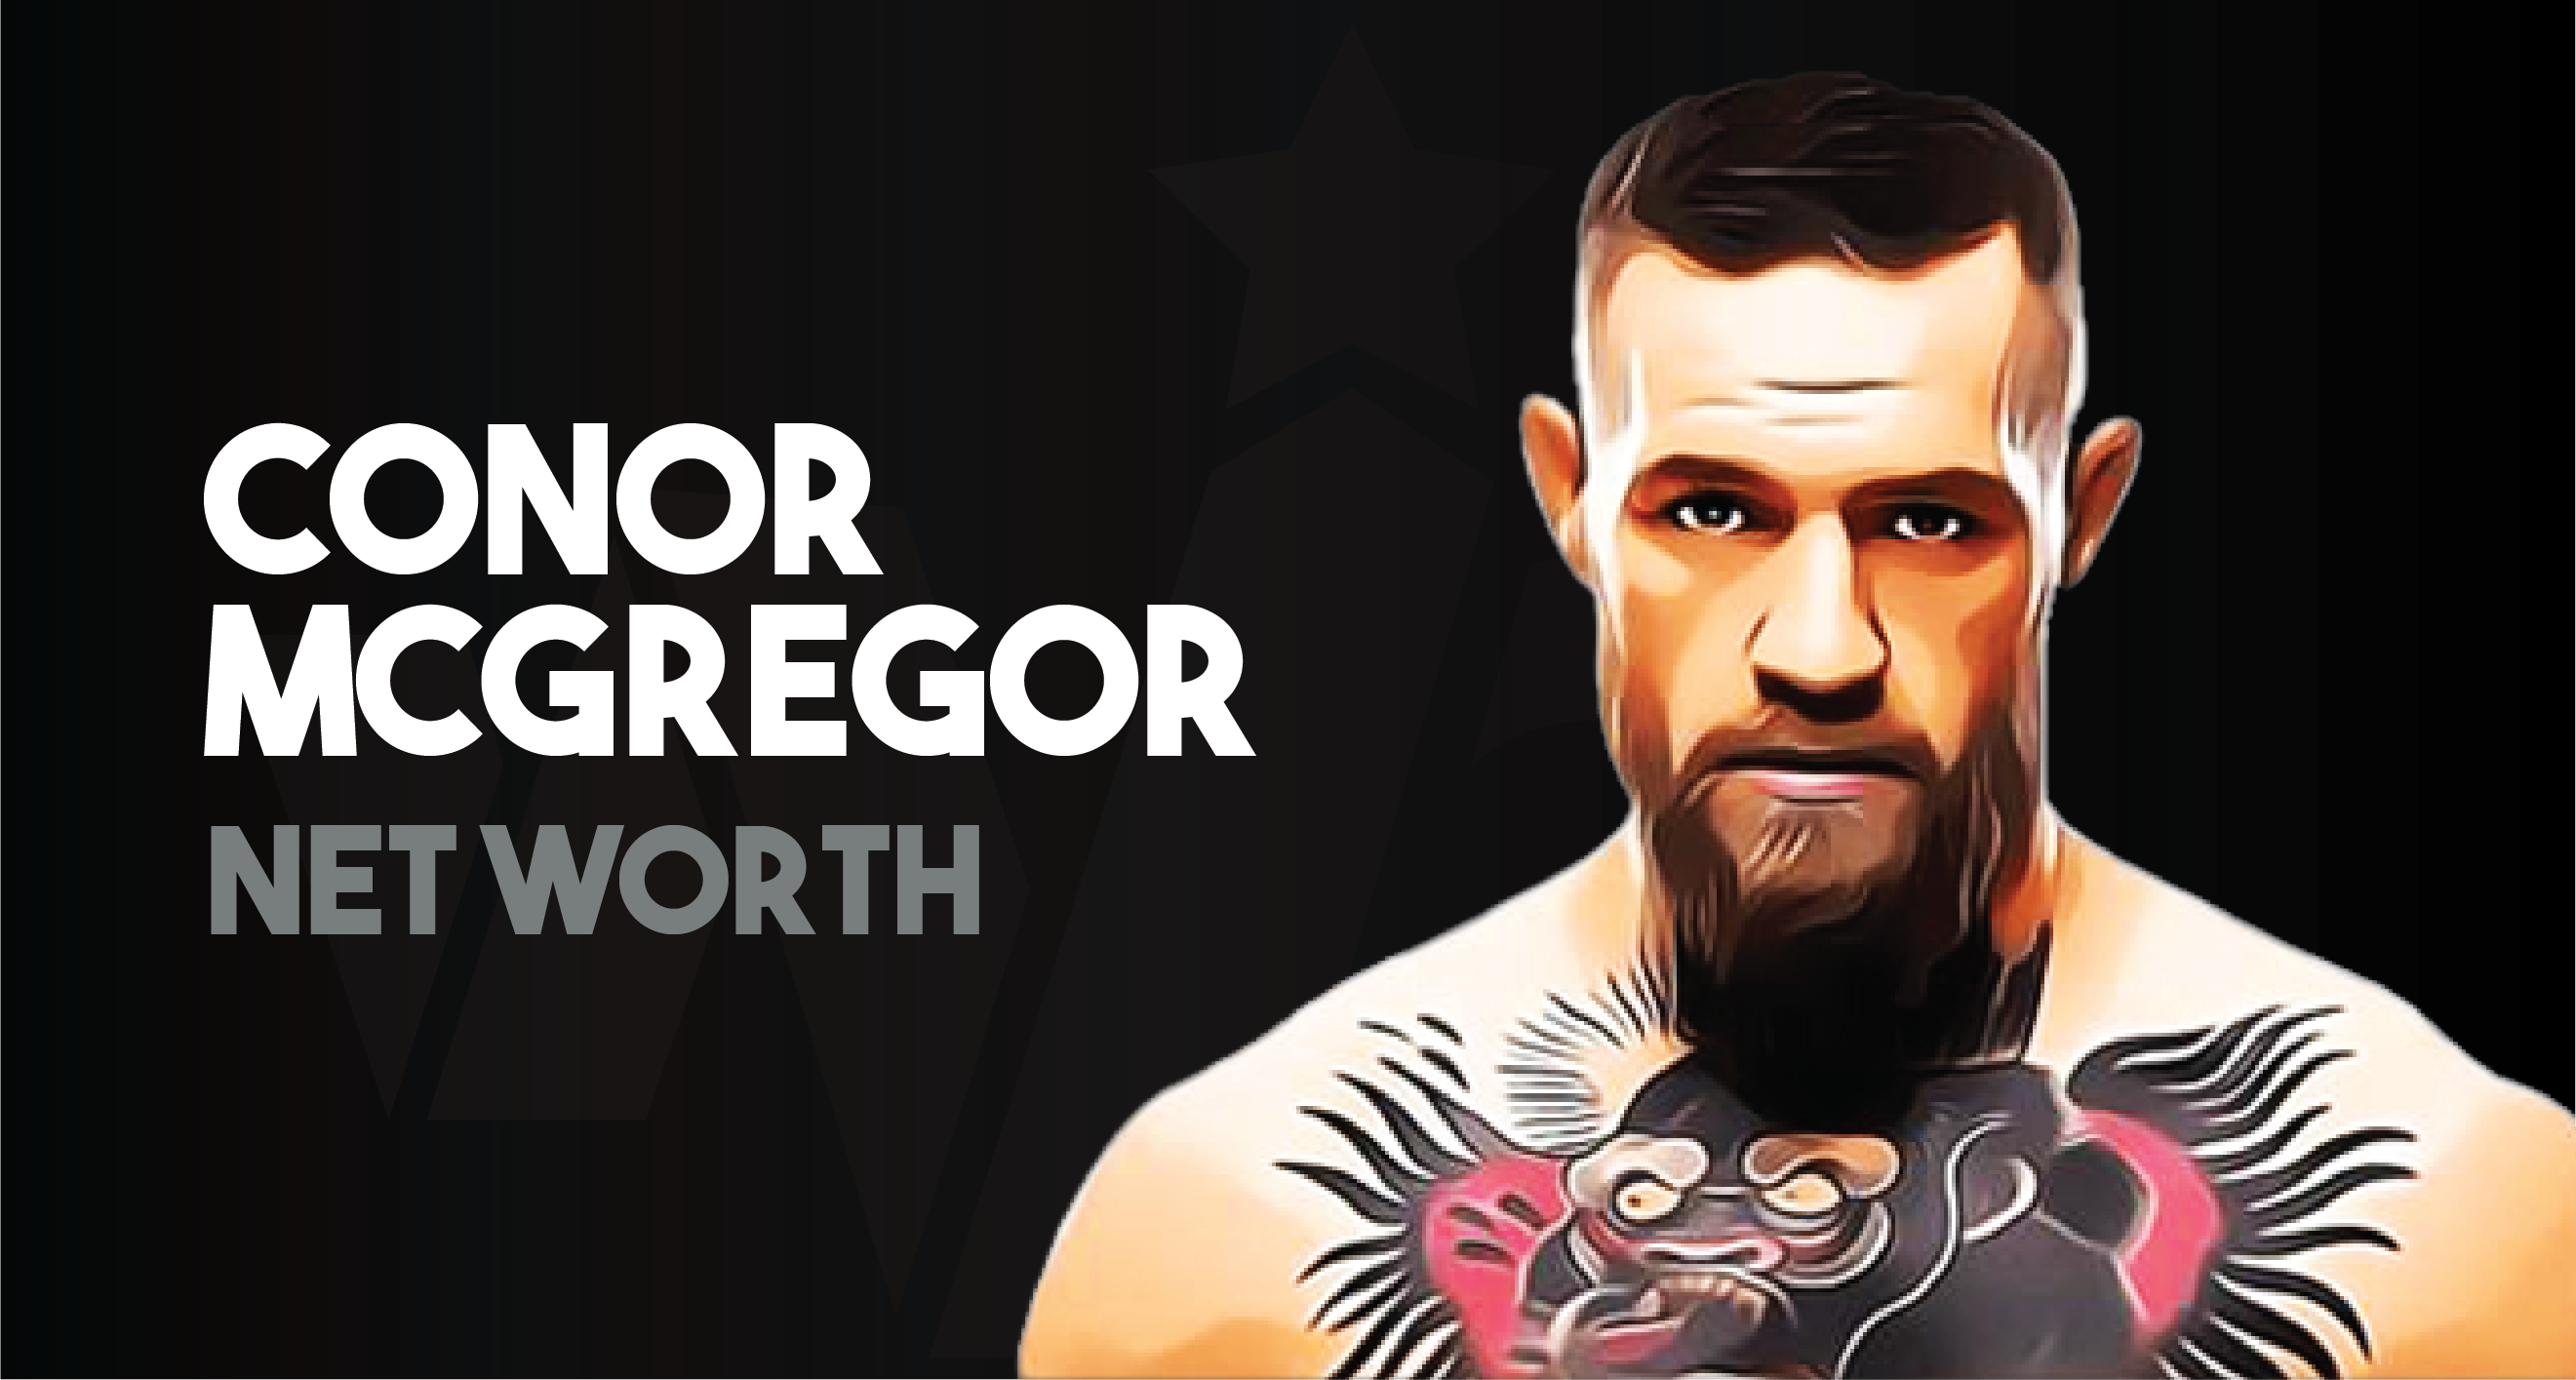 Conor McGregor_Net Worth